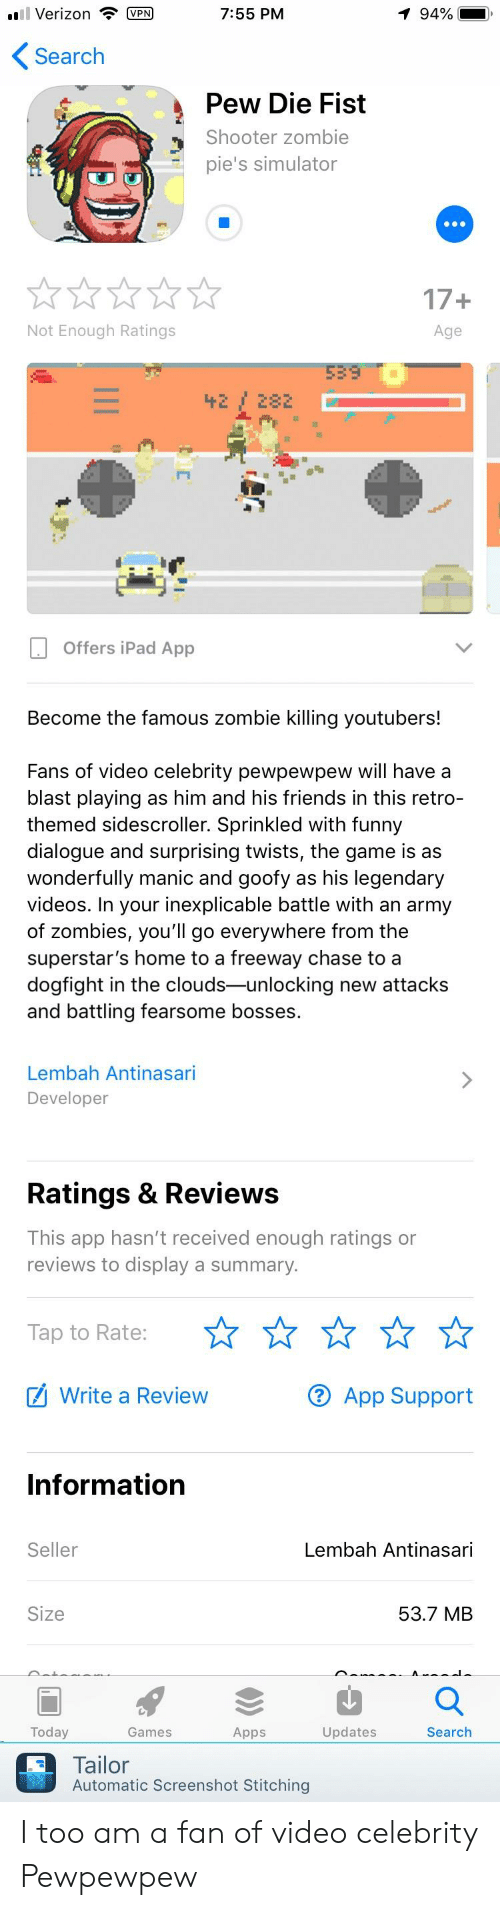 Friends, Funny, and Ipad: VerizonVPN  7:55 PM  94%  Search  Pew Die Fist  Shooter zombie  pie's simulator  17+  Age  Not Enough Ratings  Offers iPad App  Become the famous zombie killing youtubers!  Fans of video celebrity pewpewpew will have a  blast playing as him and his friends in this retro  themed sidescroller. Sprinkled with funny  dialogue and surprising twists, the game is as  wonderfully manic and goofy as his legendary  videos. In your inexplicable battle with an army  of zombies, you'll go everywhere from the  superstar's home to a freeway chase to a  dogfight in the clouds-unlocking new attacks  and battling fearsome bosses.  Lembah Antinasari  Developer  Ratings & Review:s  This app hasn't received enough ratings or  reviews to display a summary  Tap to Rate:  Write a Review  ® App Support  Information  Seller  Lembah Antinasari  Size  53.7 MB  Today  Games  Apps  Updates  Search  Tailor  Automatic Screenshot Stitching I too am a fan of video celebrity Pewpewpew